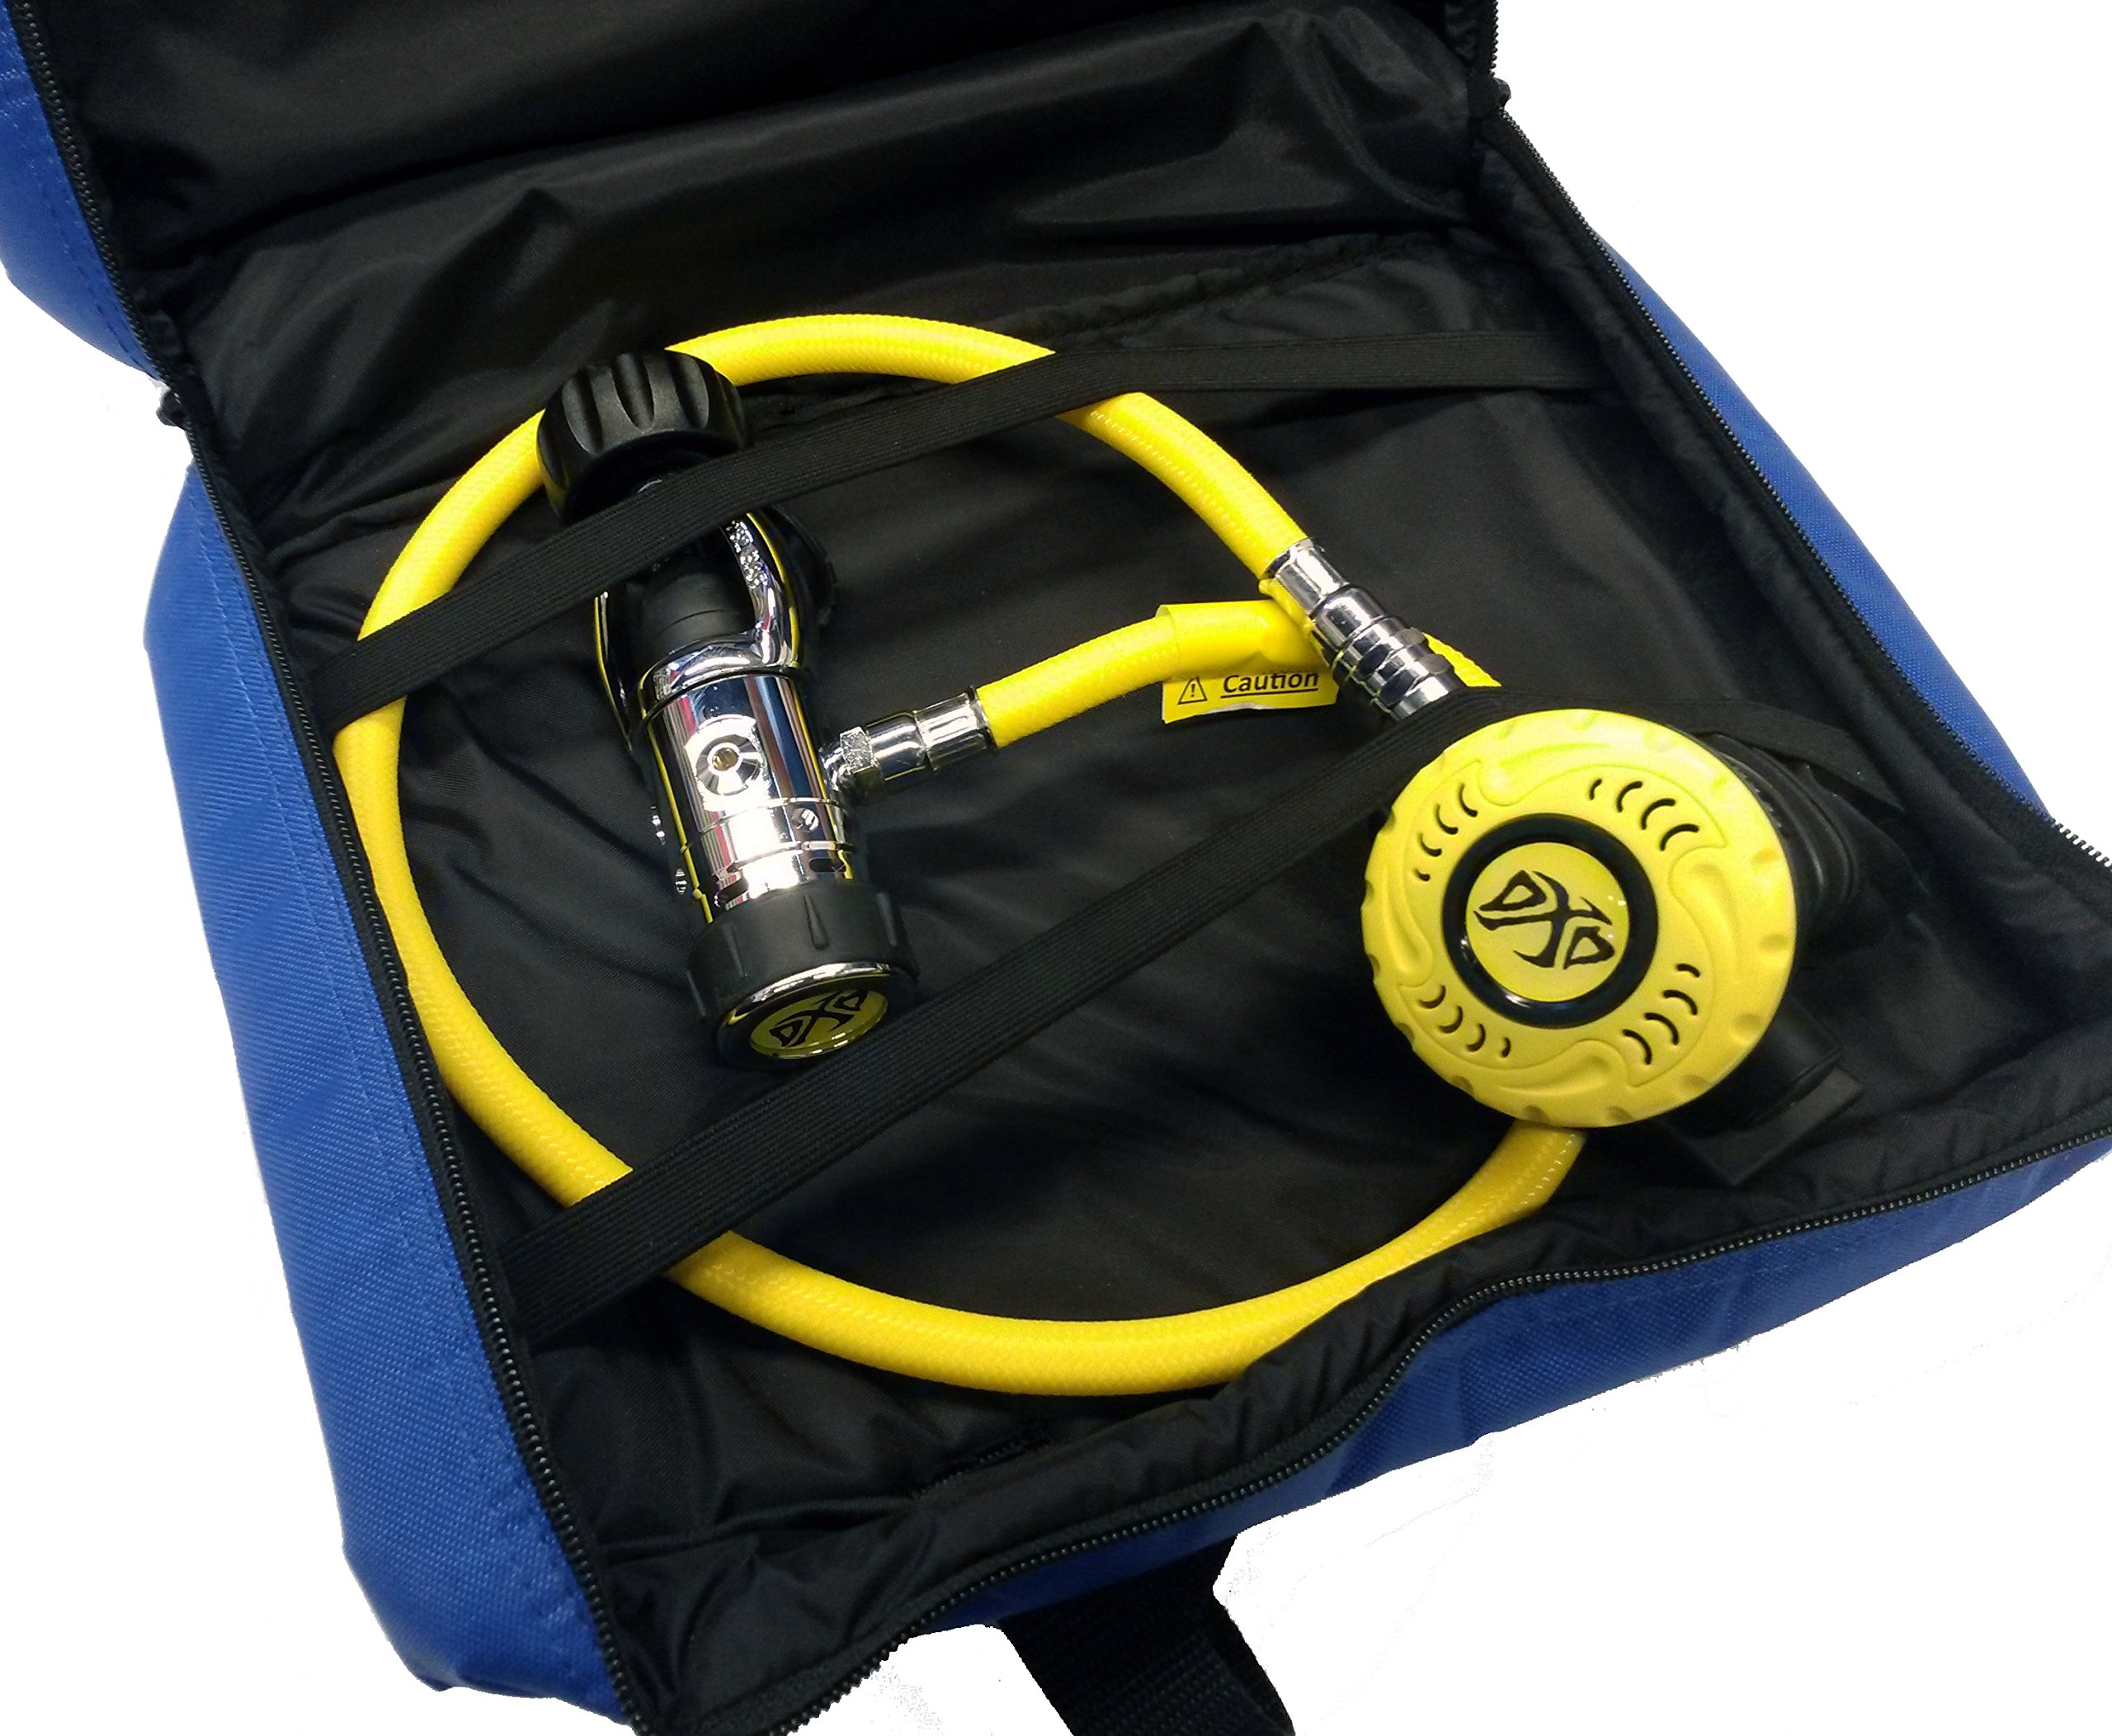 DXDIVER Diving Regulator with Braided Flex Hose First and Second Stage Scuba Dive with FREE Reg Bag